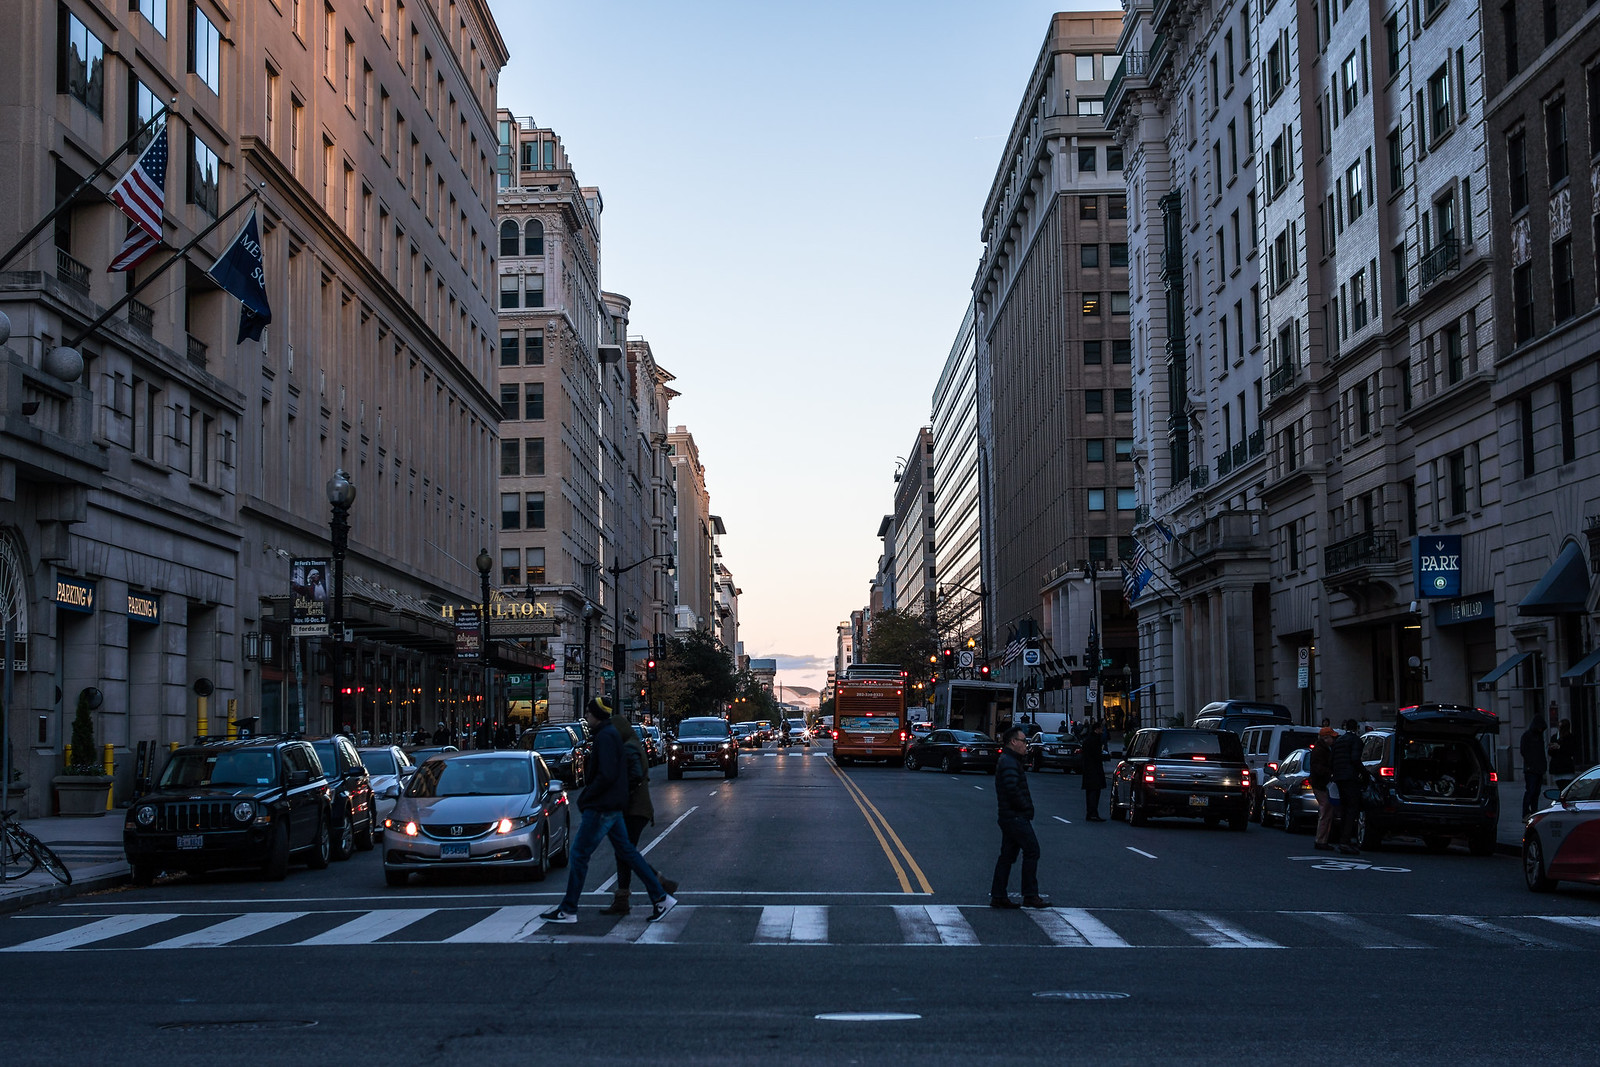 20171110_WashingtonDC_21